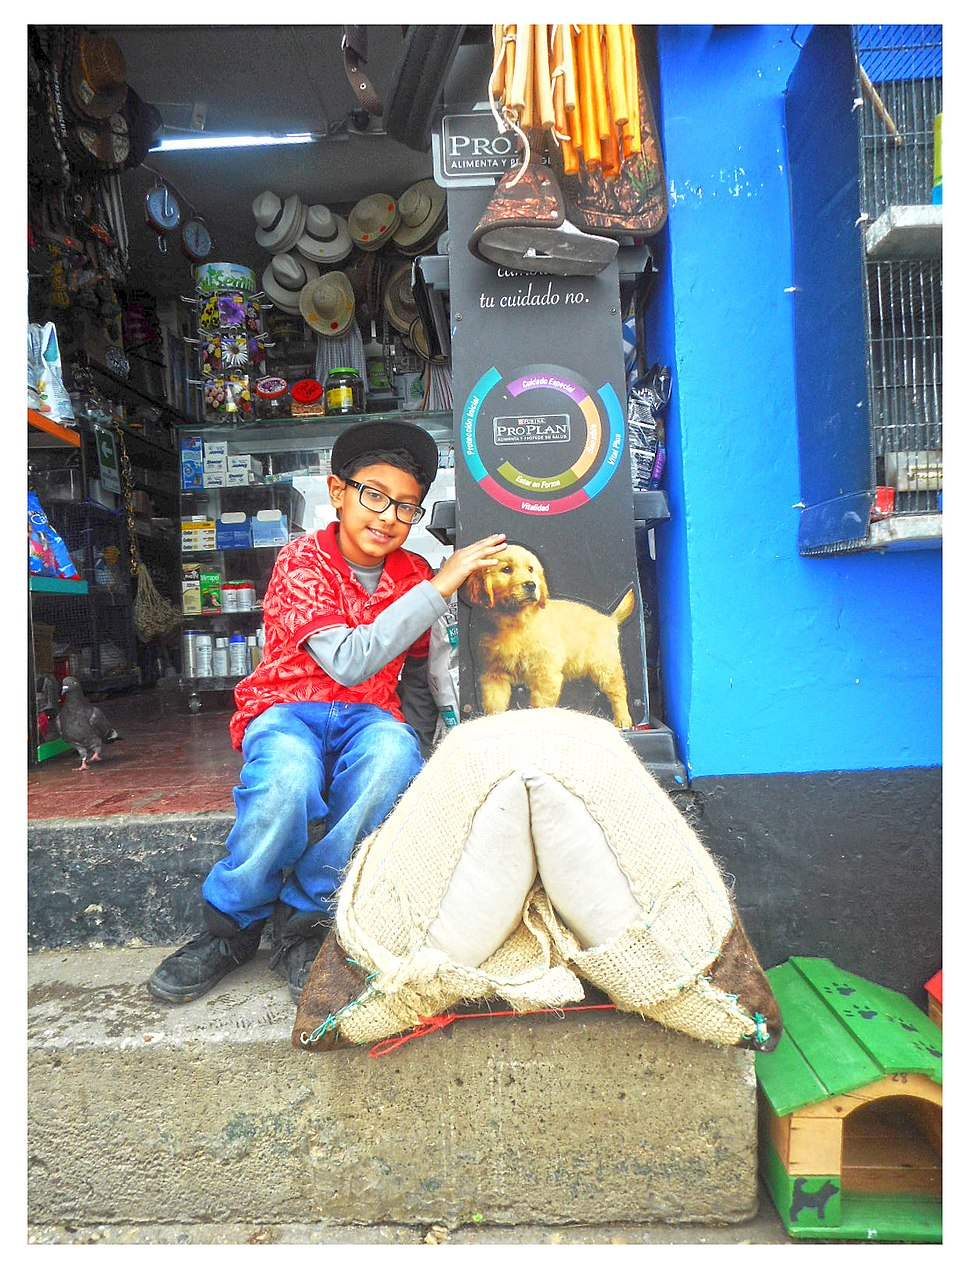 Photographic Illusions - Daniel Di Palma - Boy with cardboard dog 01